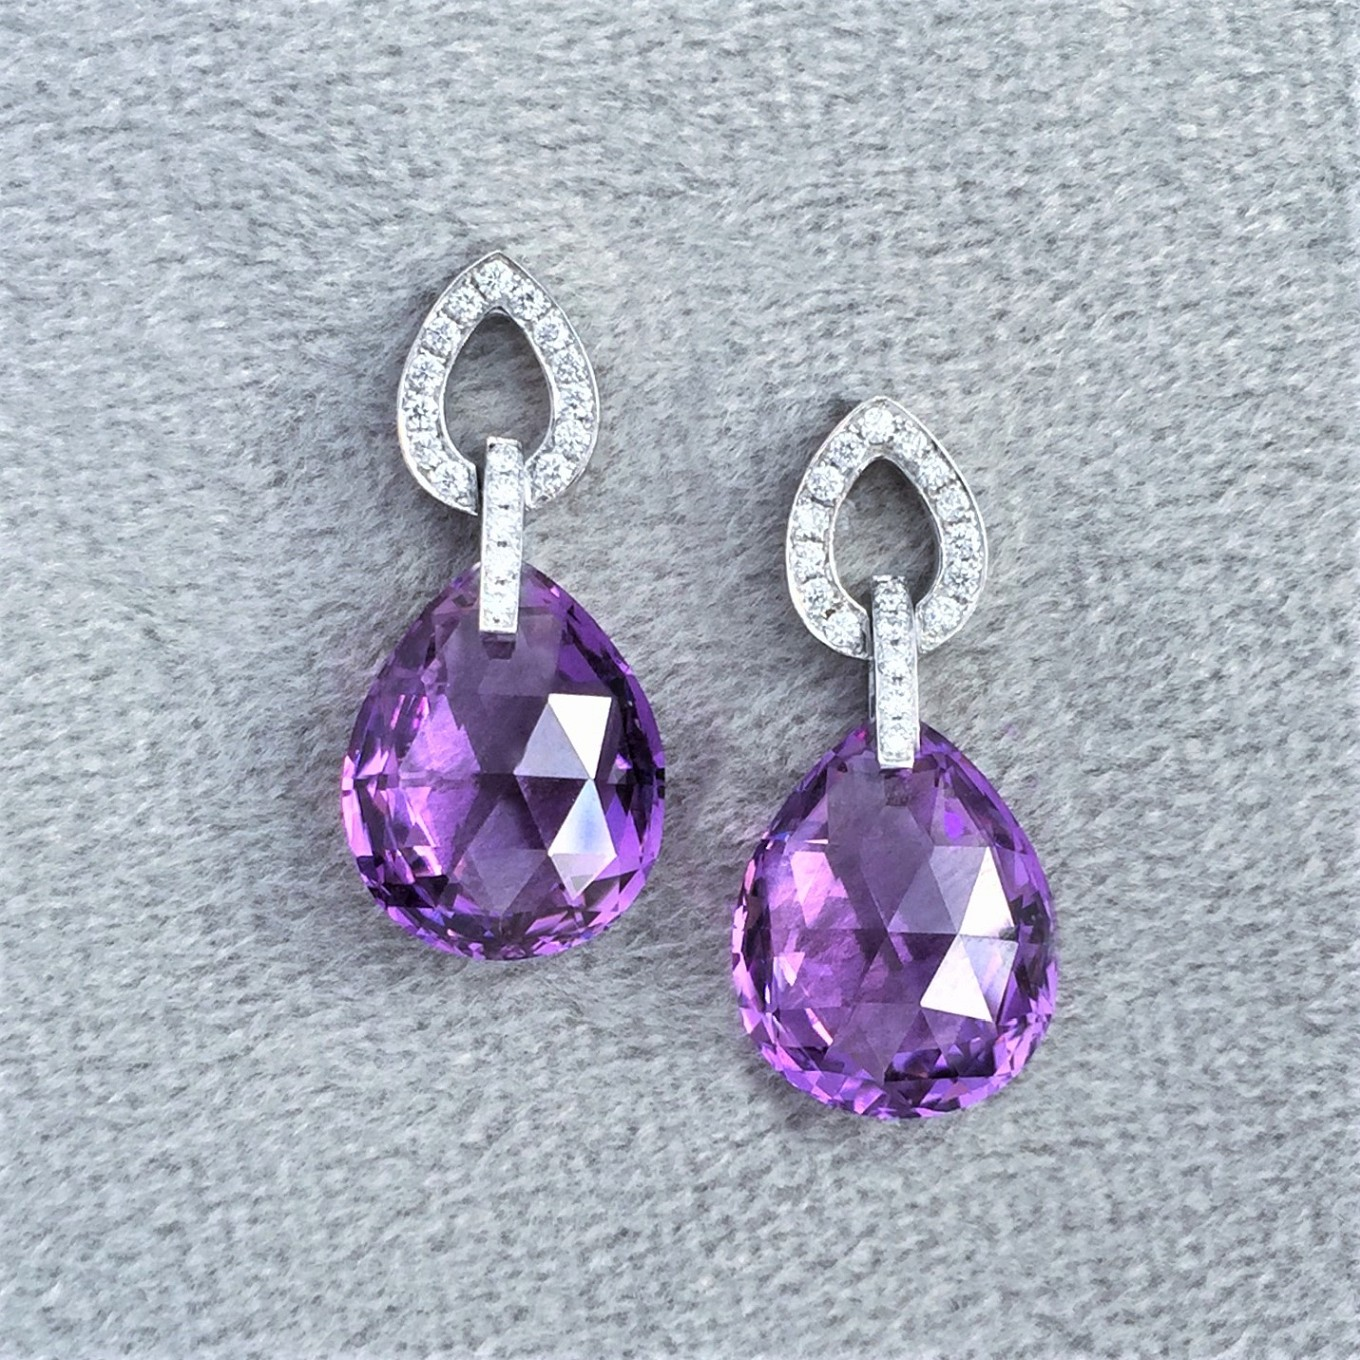 Pear shape briolette amethyst & diamond frame earrings in white gold